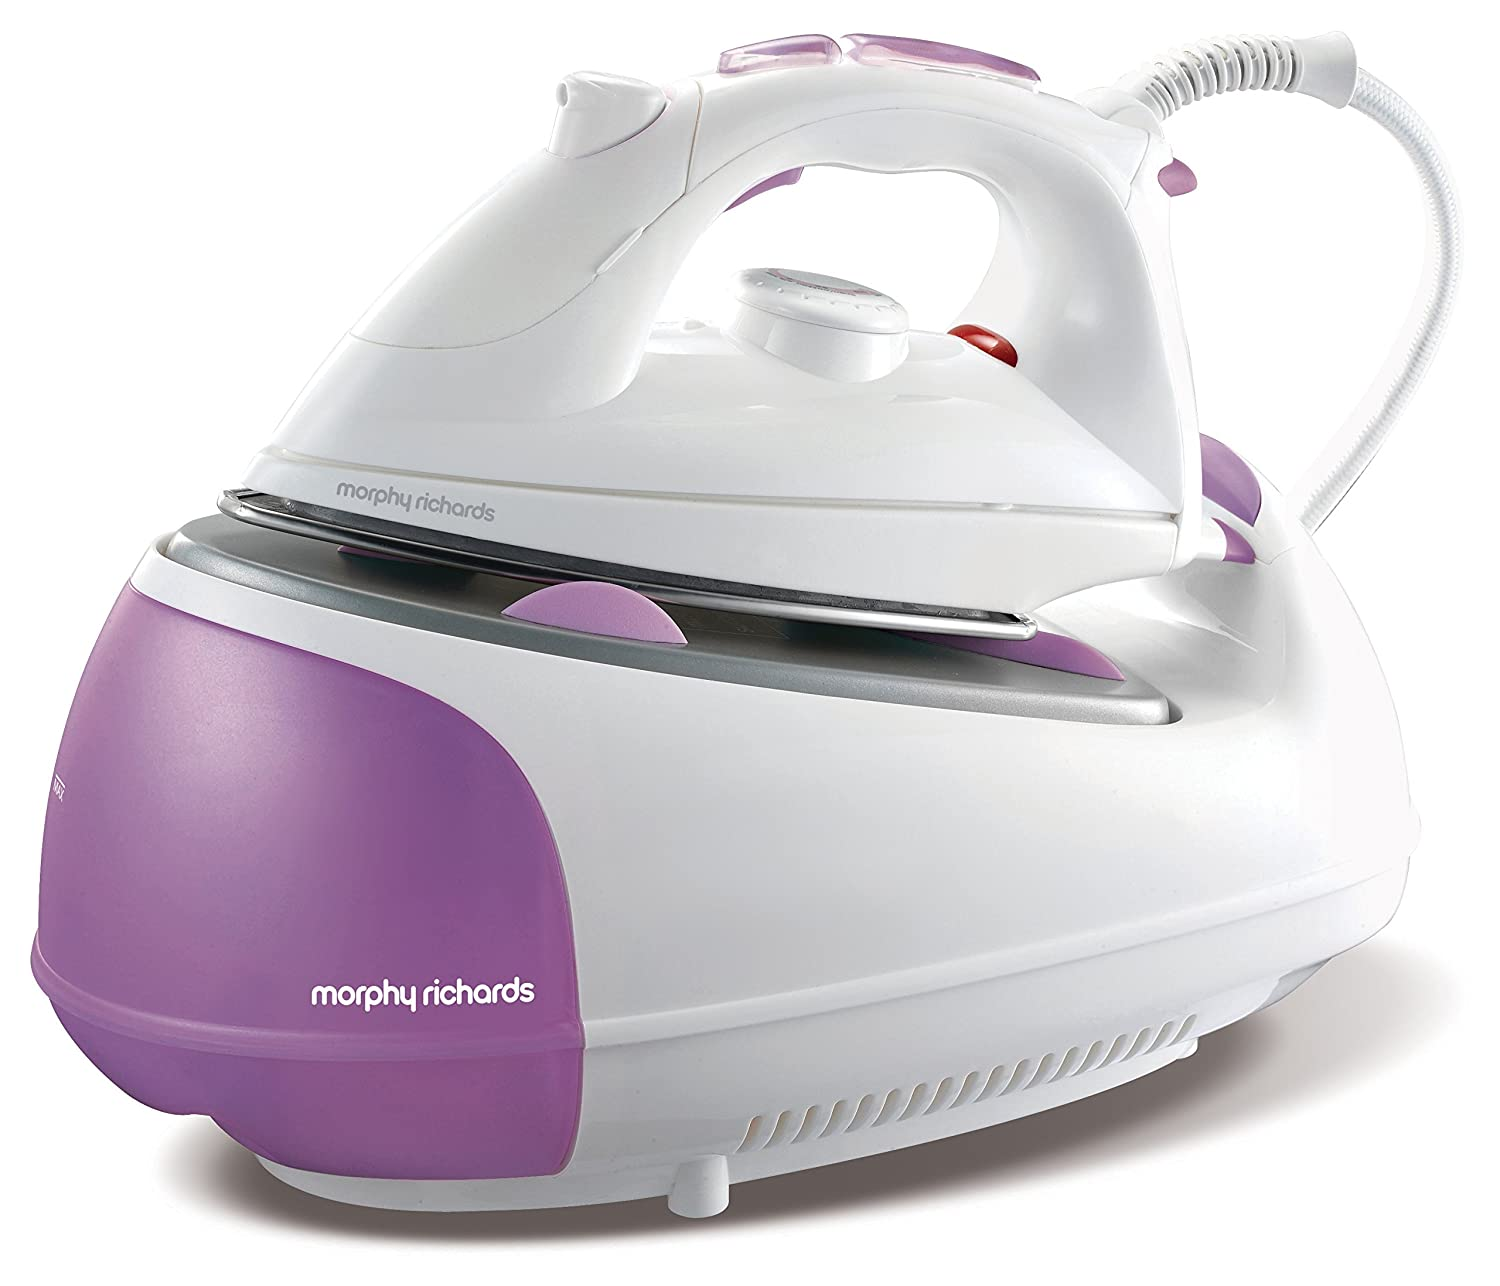 Morphy Richards Jet Steam Generator Iron 333020 Pink White Steam Generator Irons [Energy Class A]